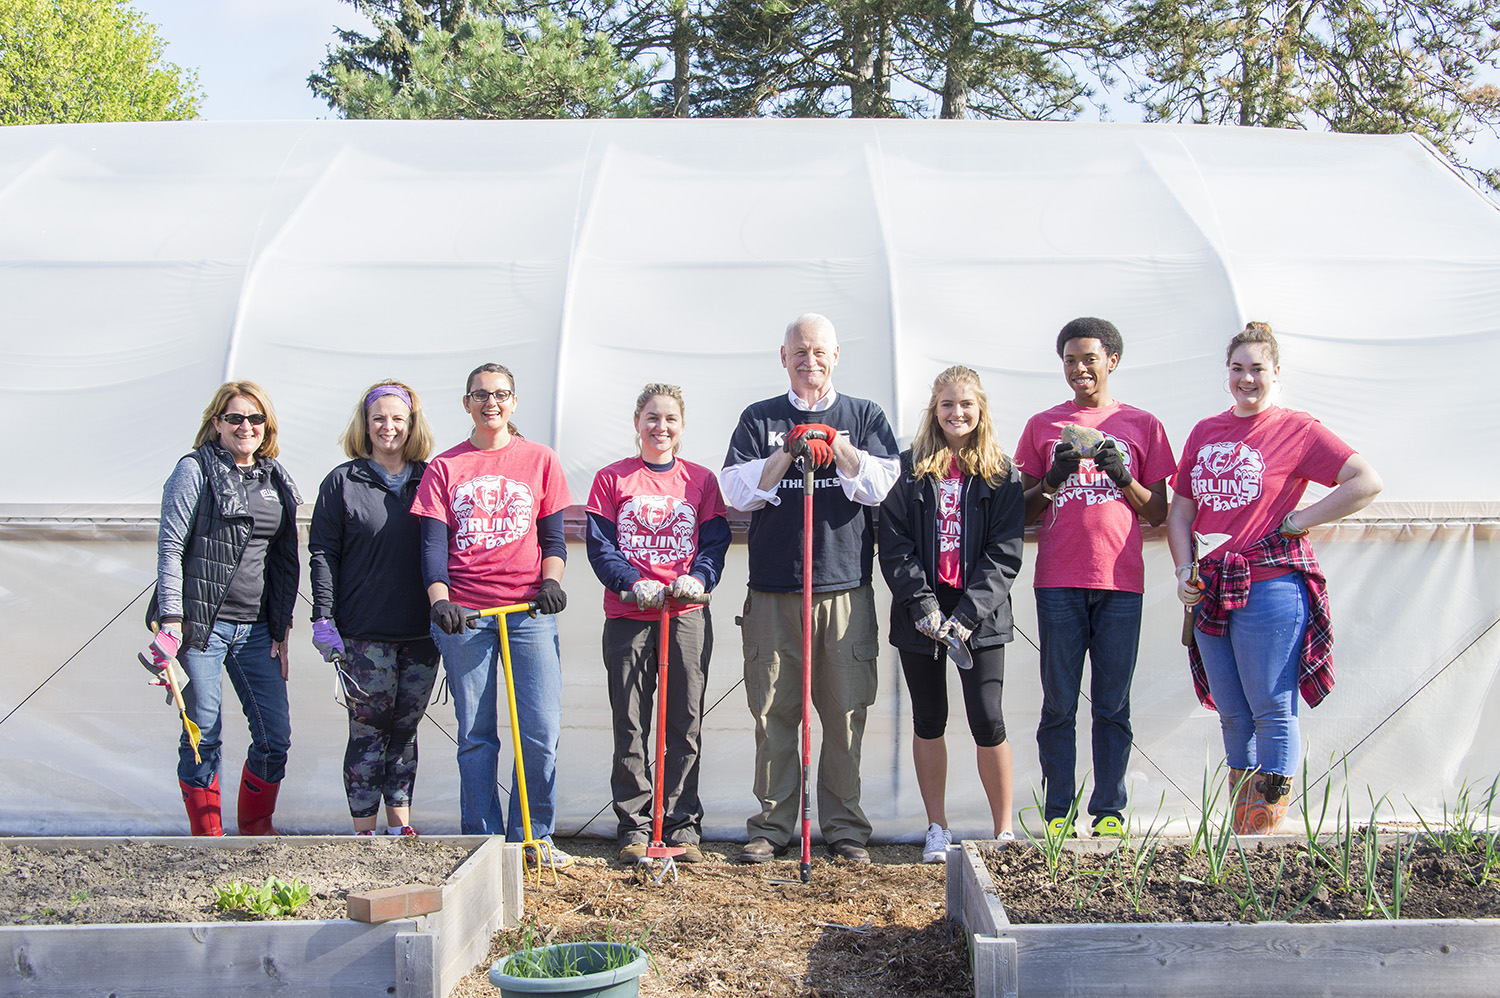 Bruins Give Back participants pose while volunteering in KCC's community garden.